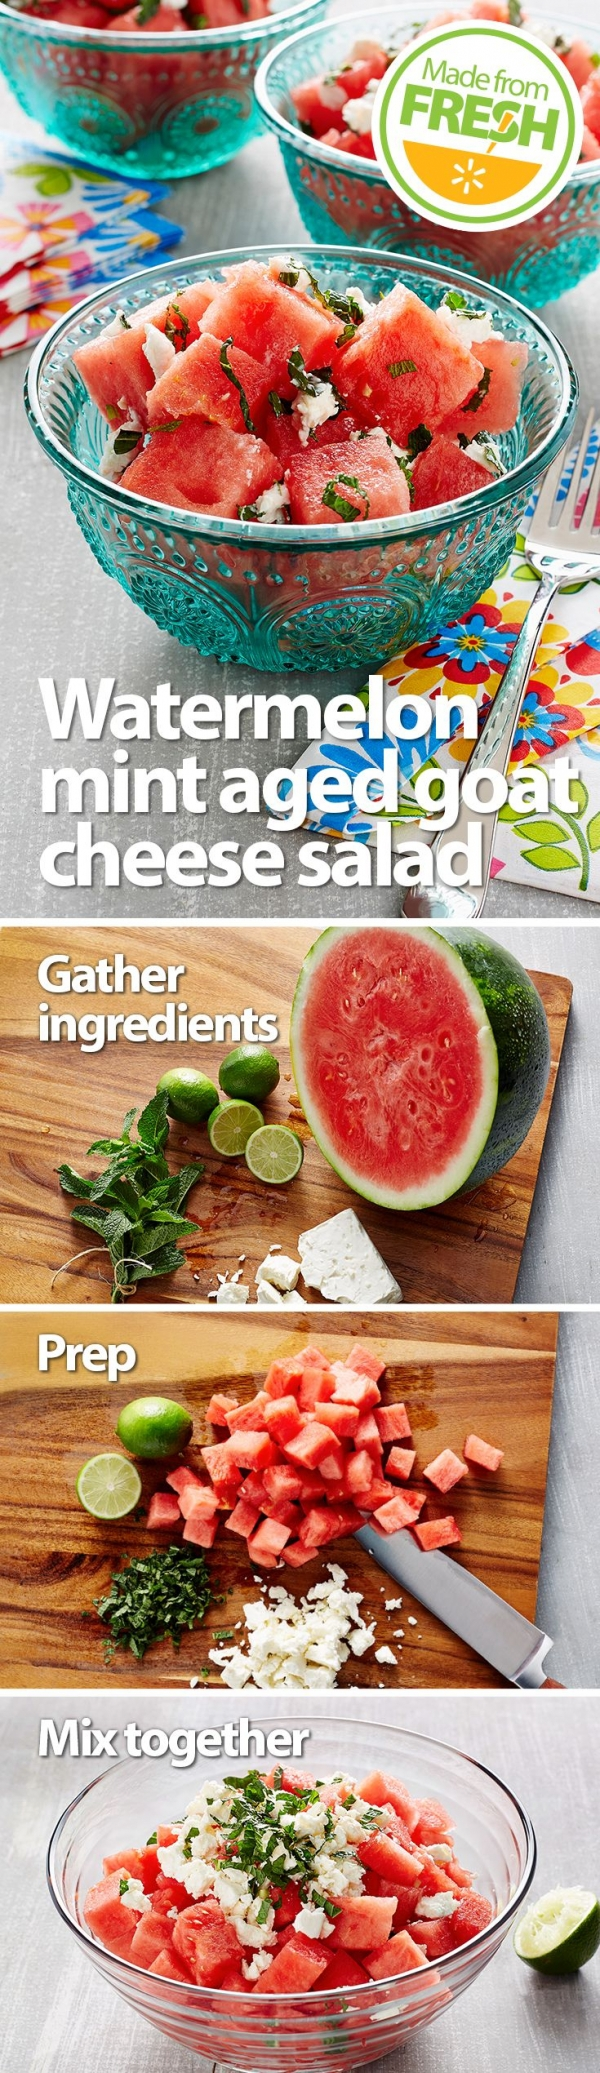 Watermelon, Mint & Goat Cheese Salad